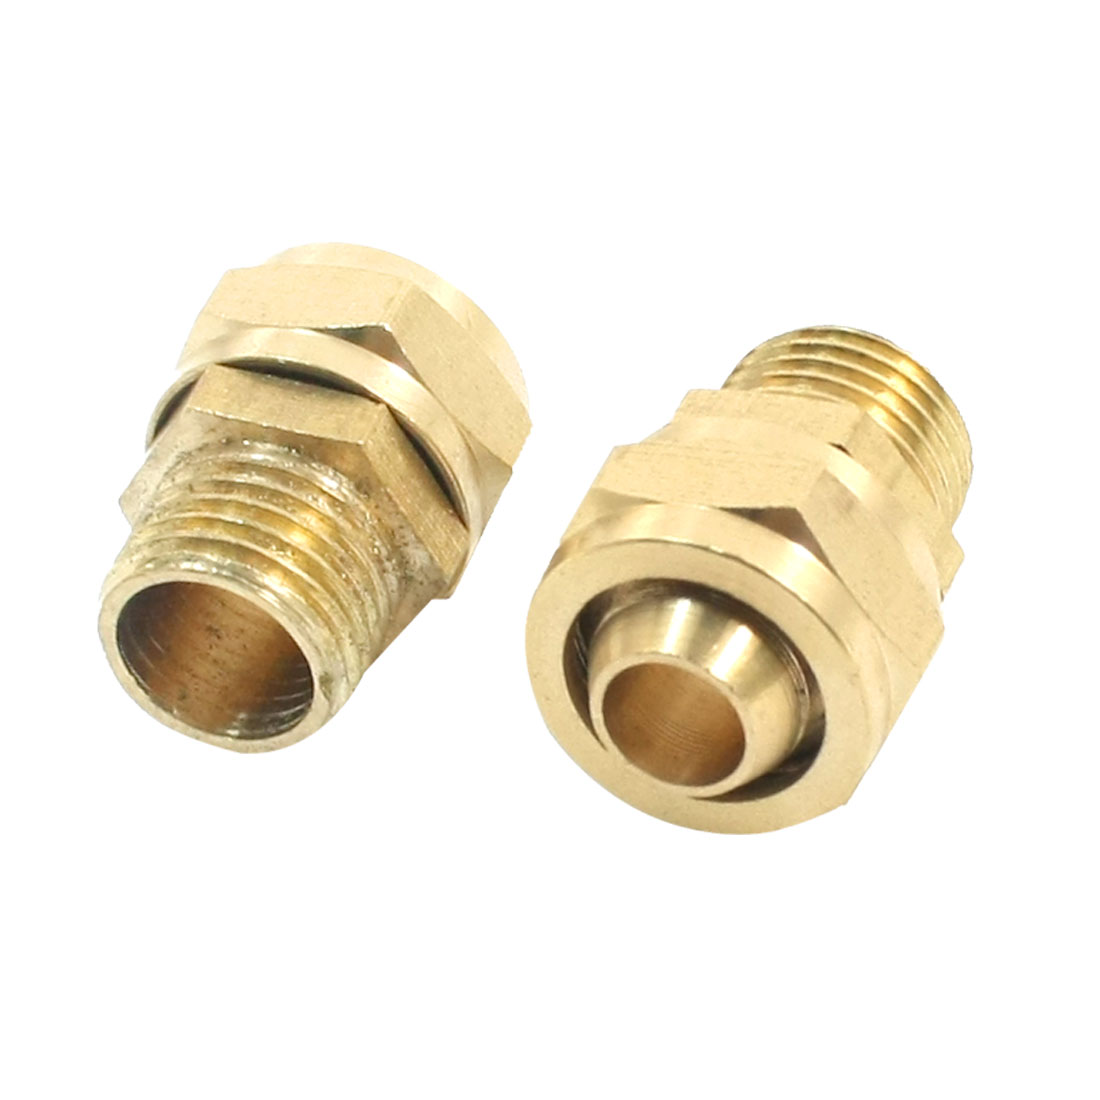 2PCS 1/4PT Male Thread to 10mm Push in Tube Dia Pneumatic Air Quick Release Fitting Coupler Joint Connector Adapter